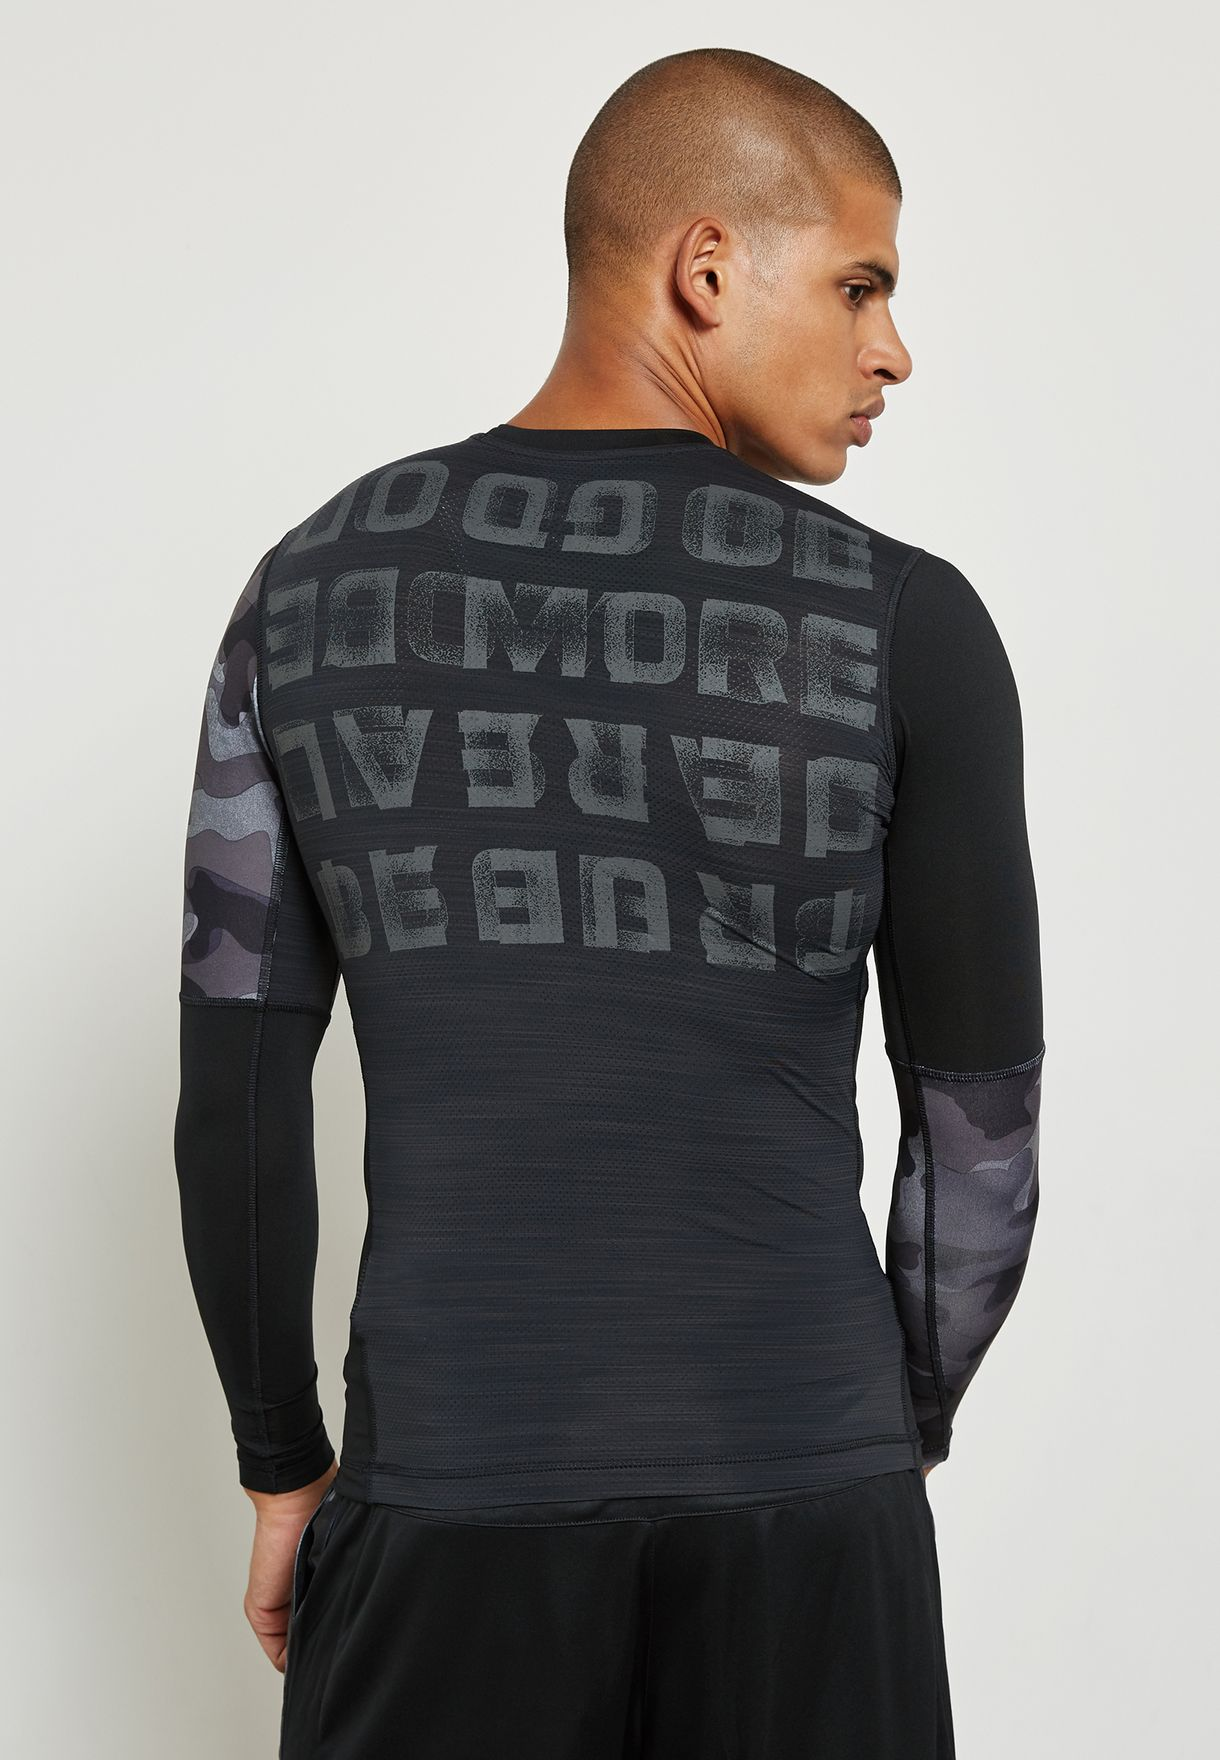 aaceb43a8dc0 Shop Reebok black ACTIVChill Graphic Compression T-Shirt BR9579 for ...